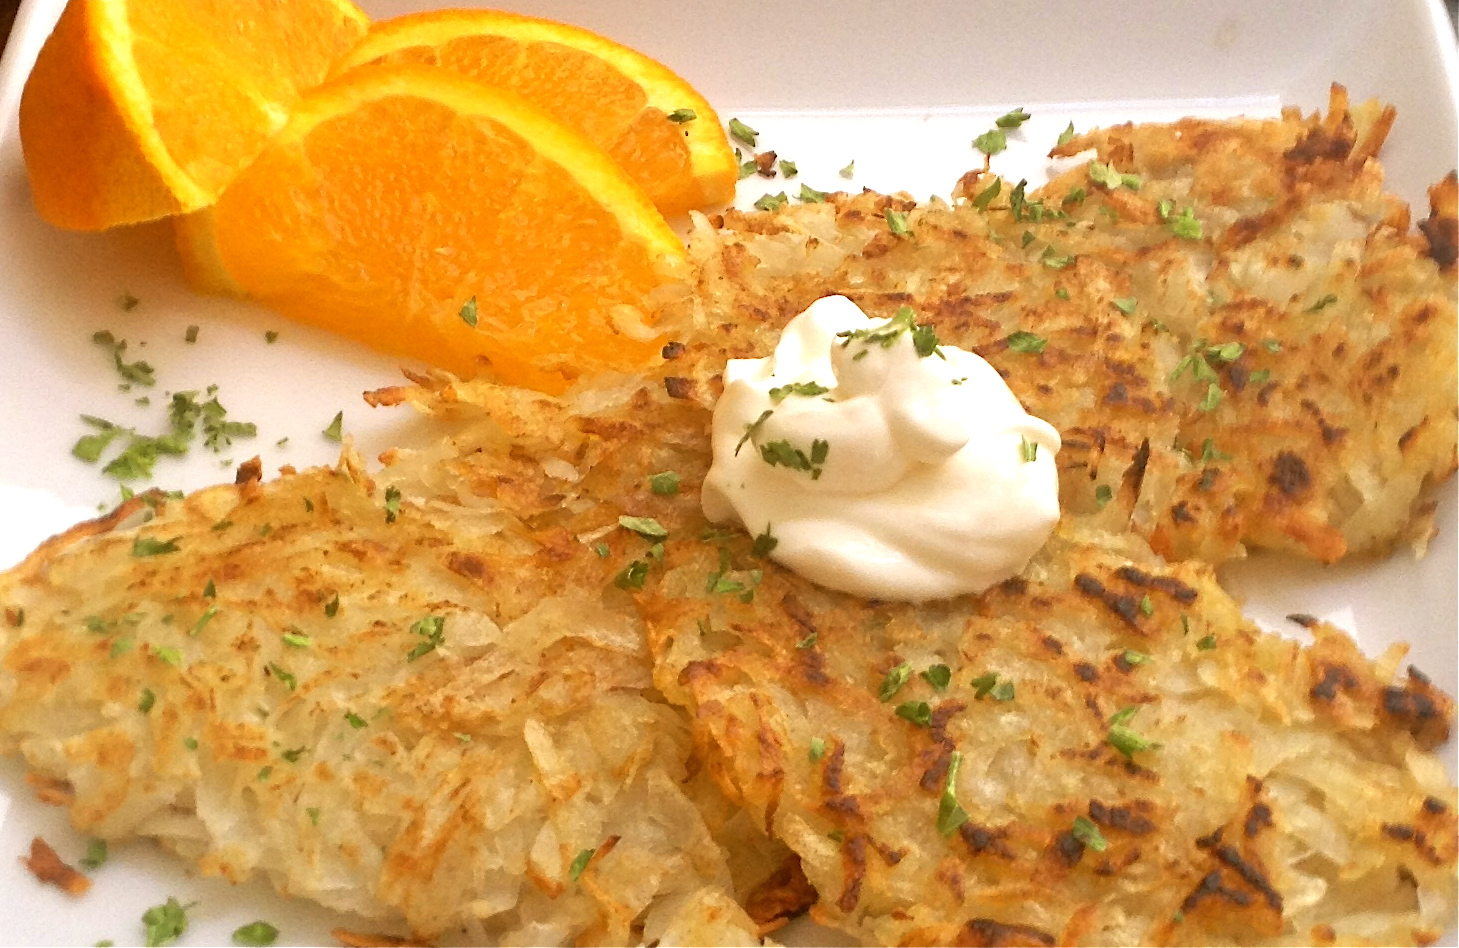 Crispy hash browns ready to eat!